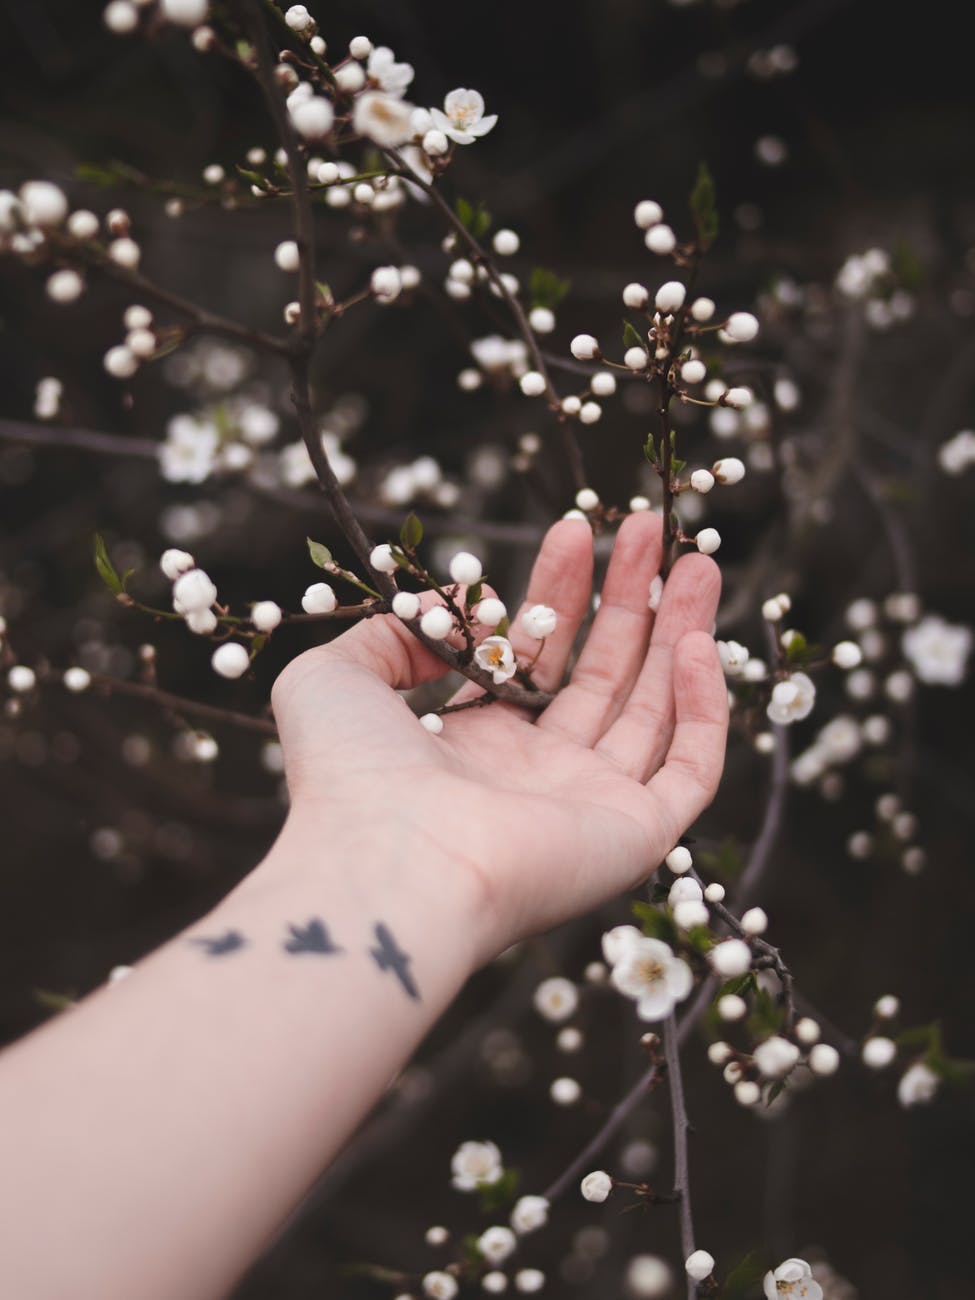 person touching white flowers